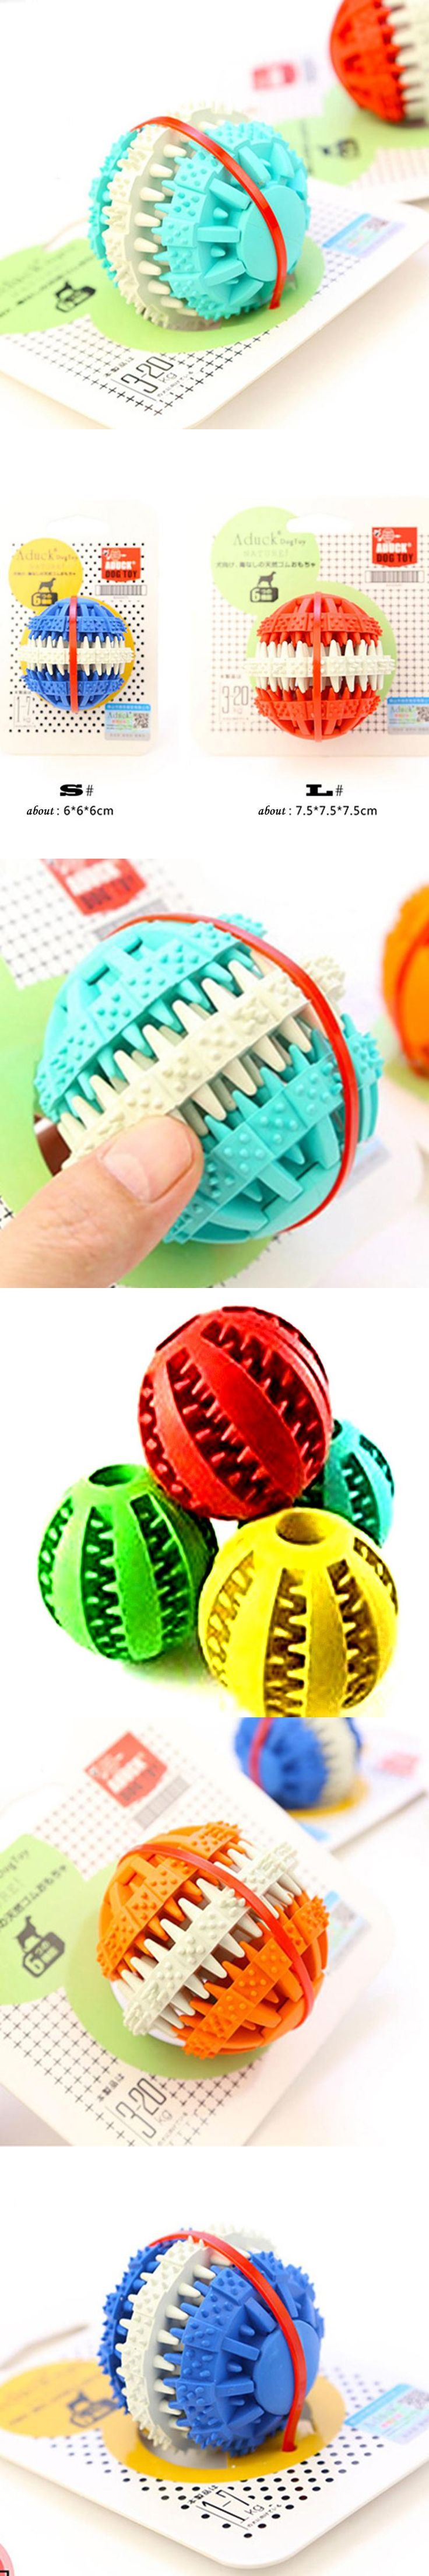 Best 25 Puppy teething toys ideas on Pinterest